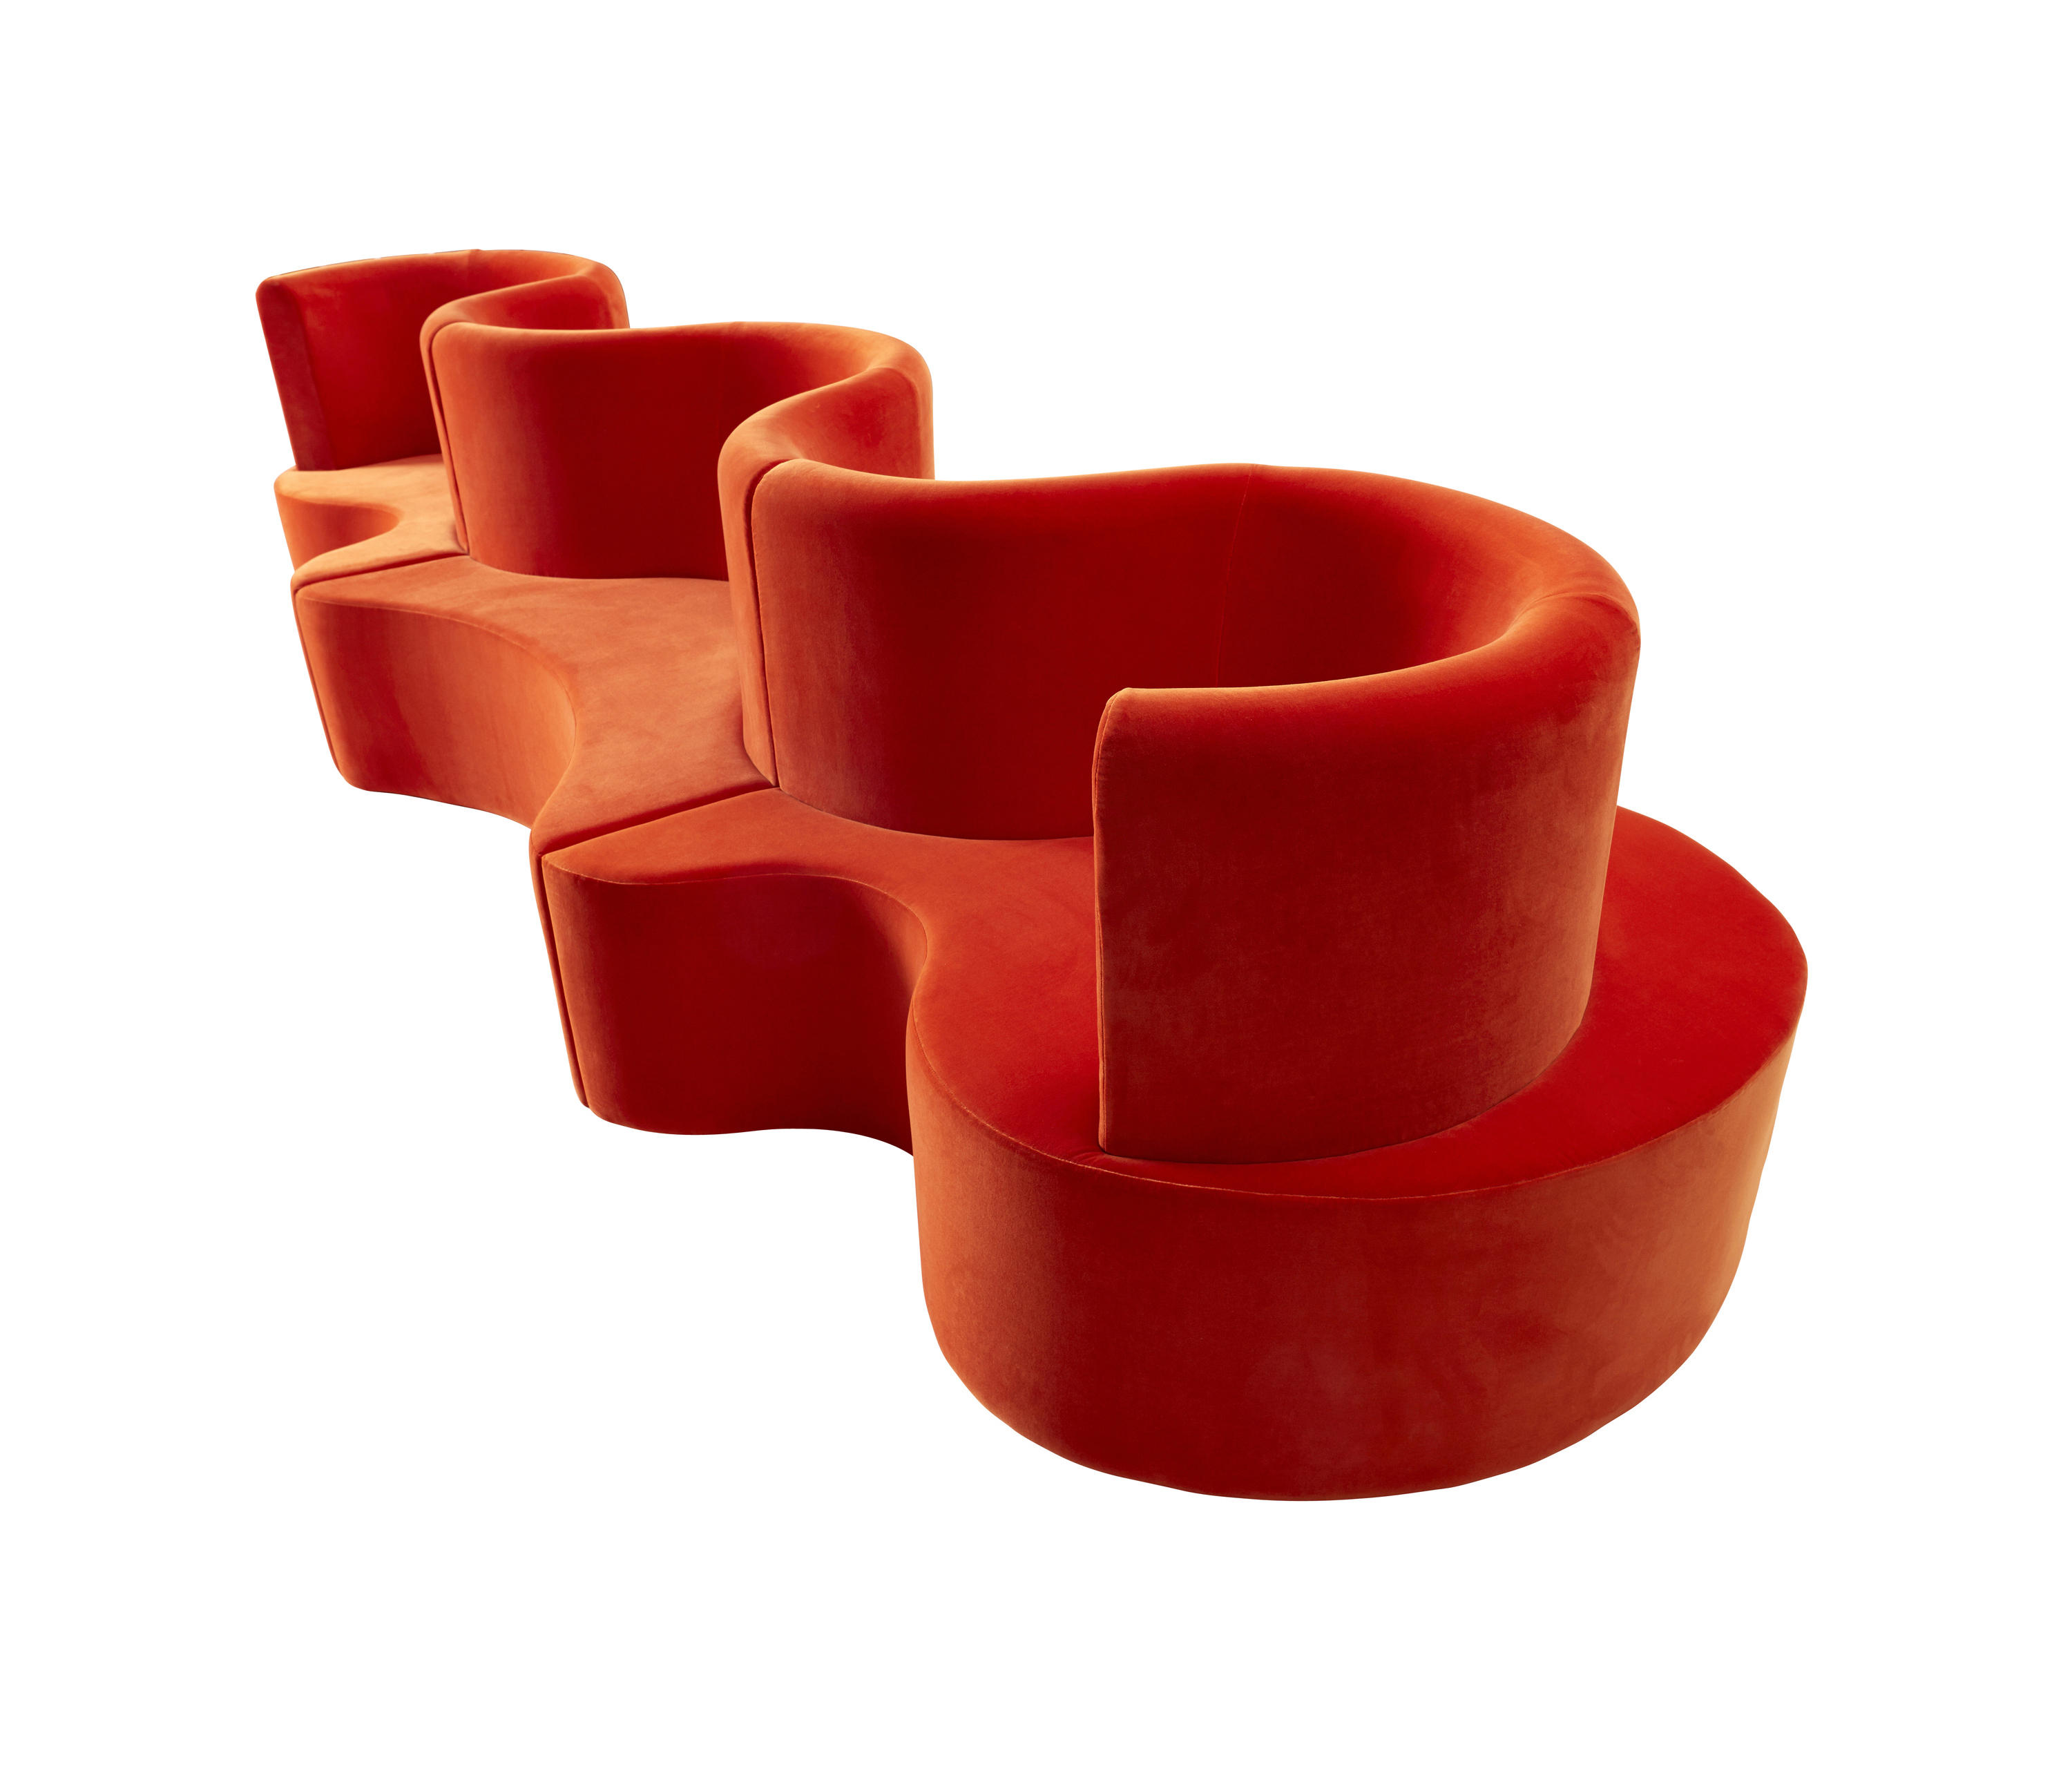 ... Cloverleaf | Sofa - with ext. unit by Verpan | Modular seating elements